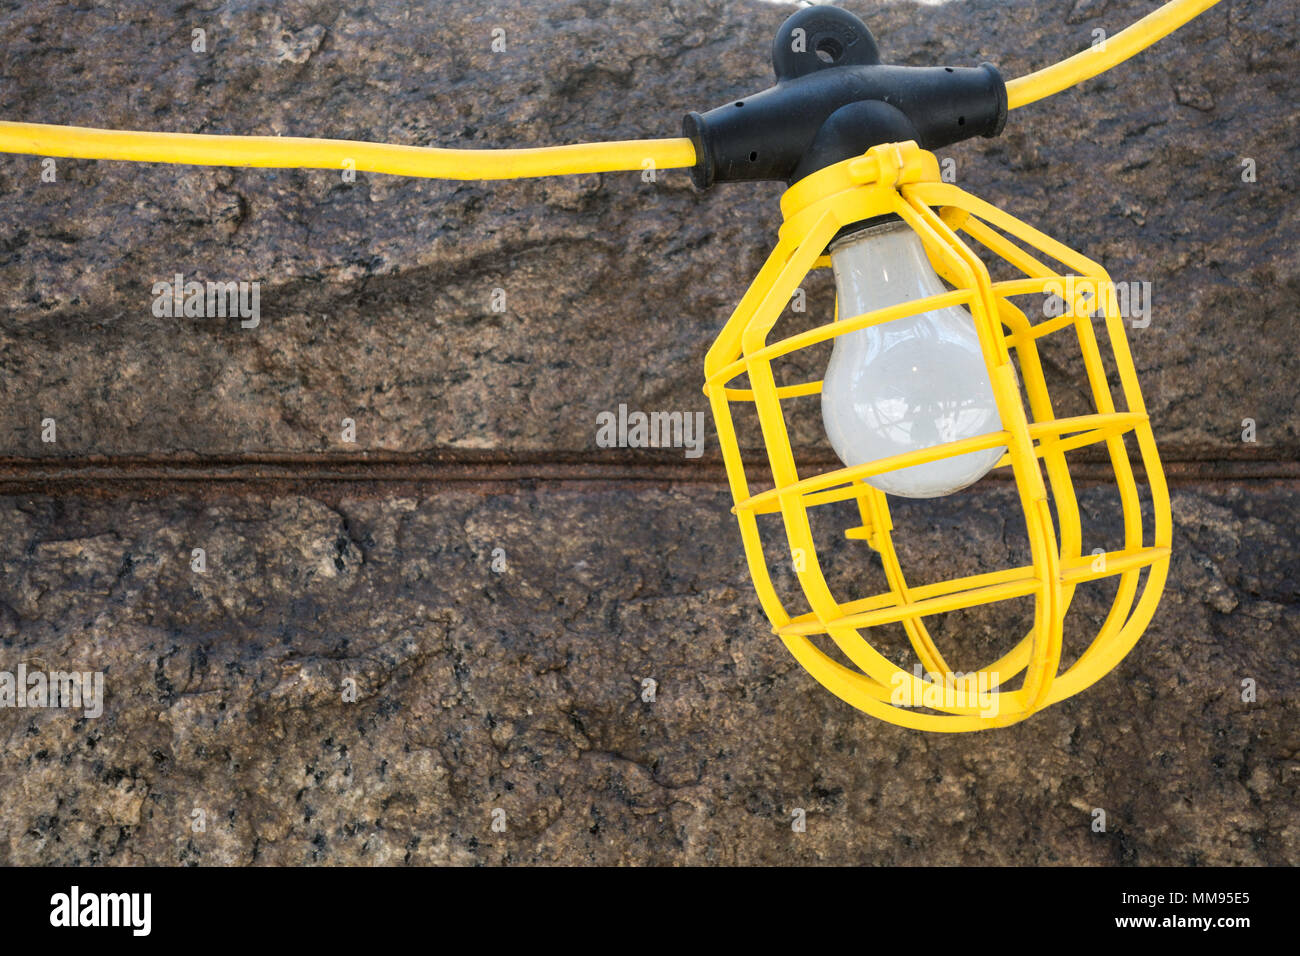 A yellow work light hanging outdoors on a wire - Stock Image